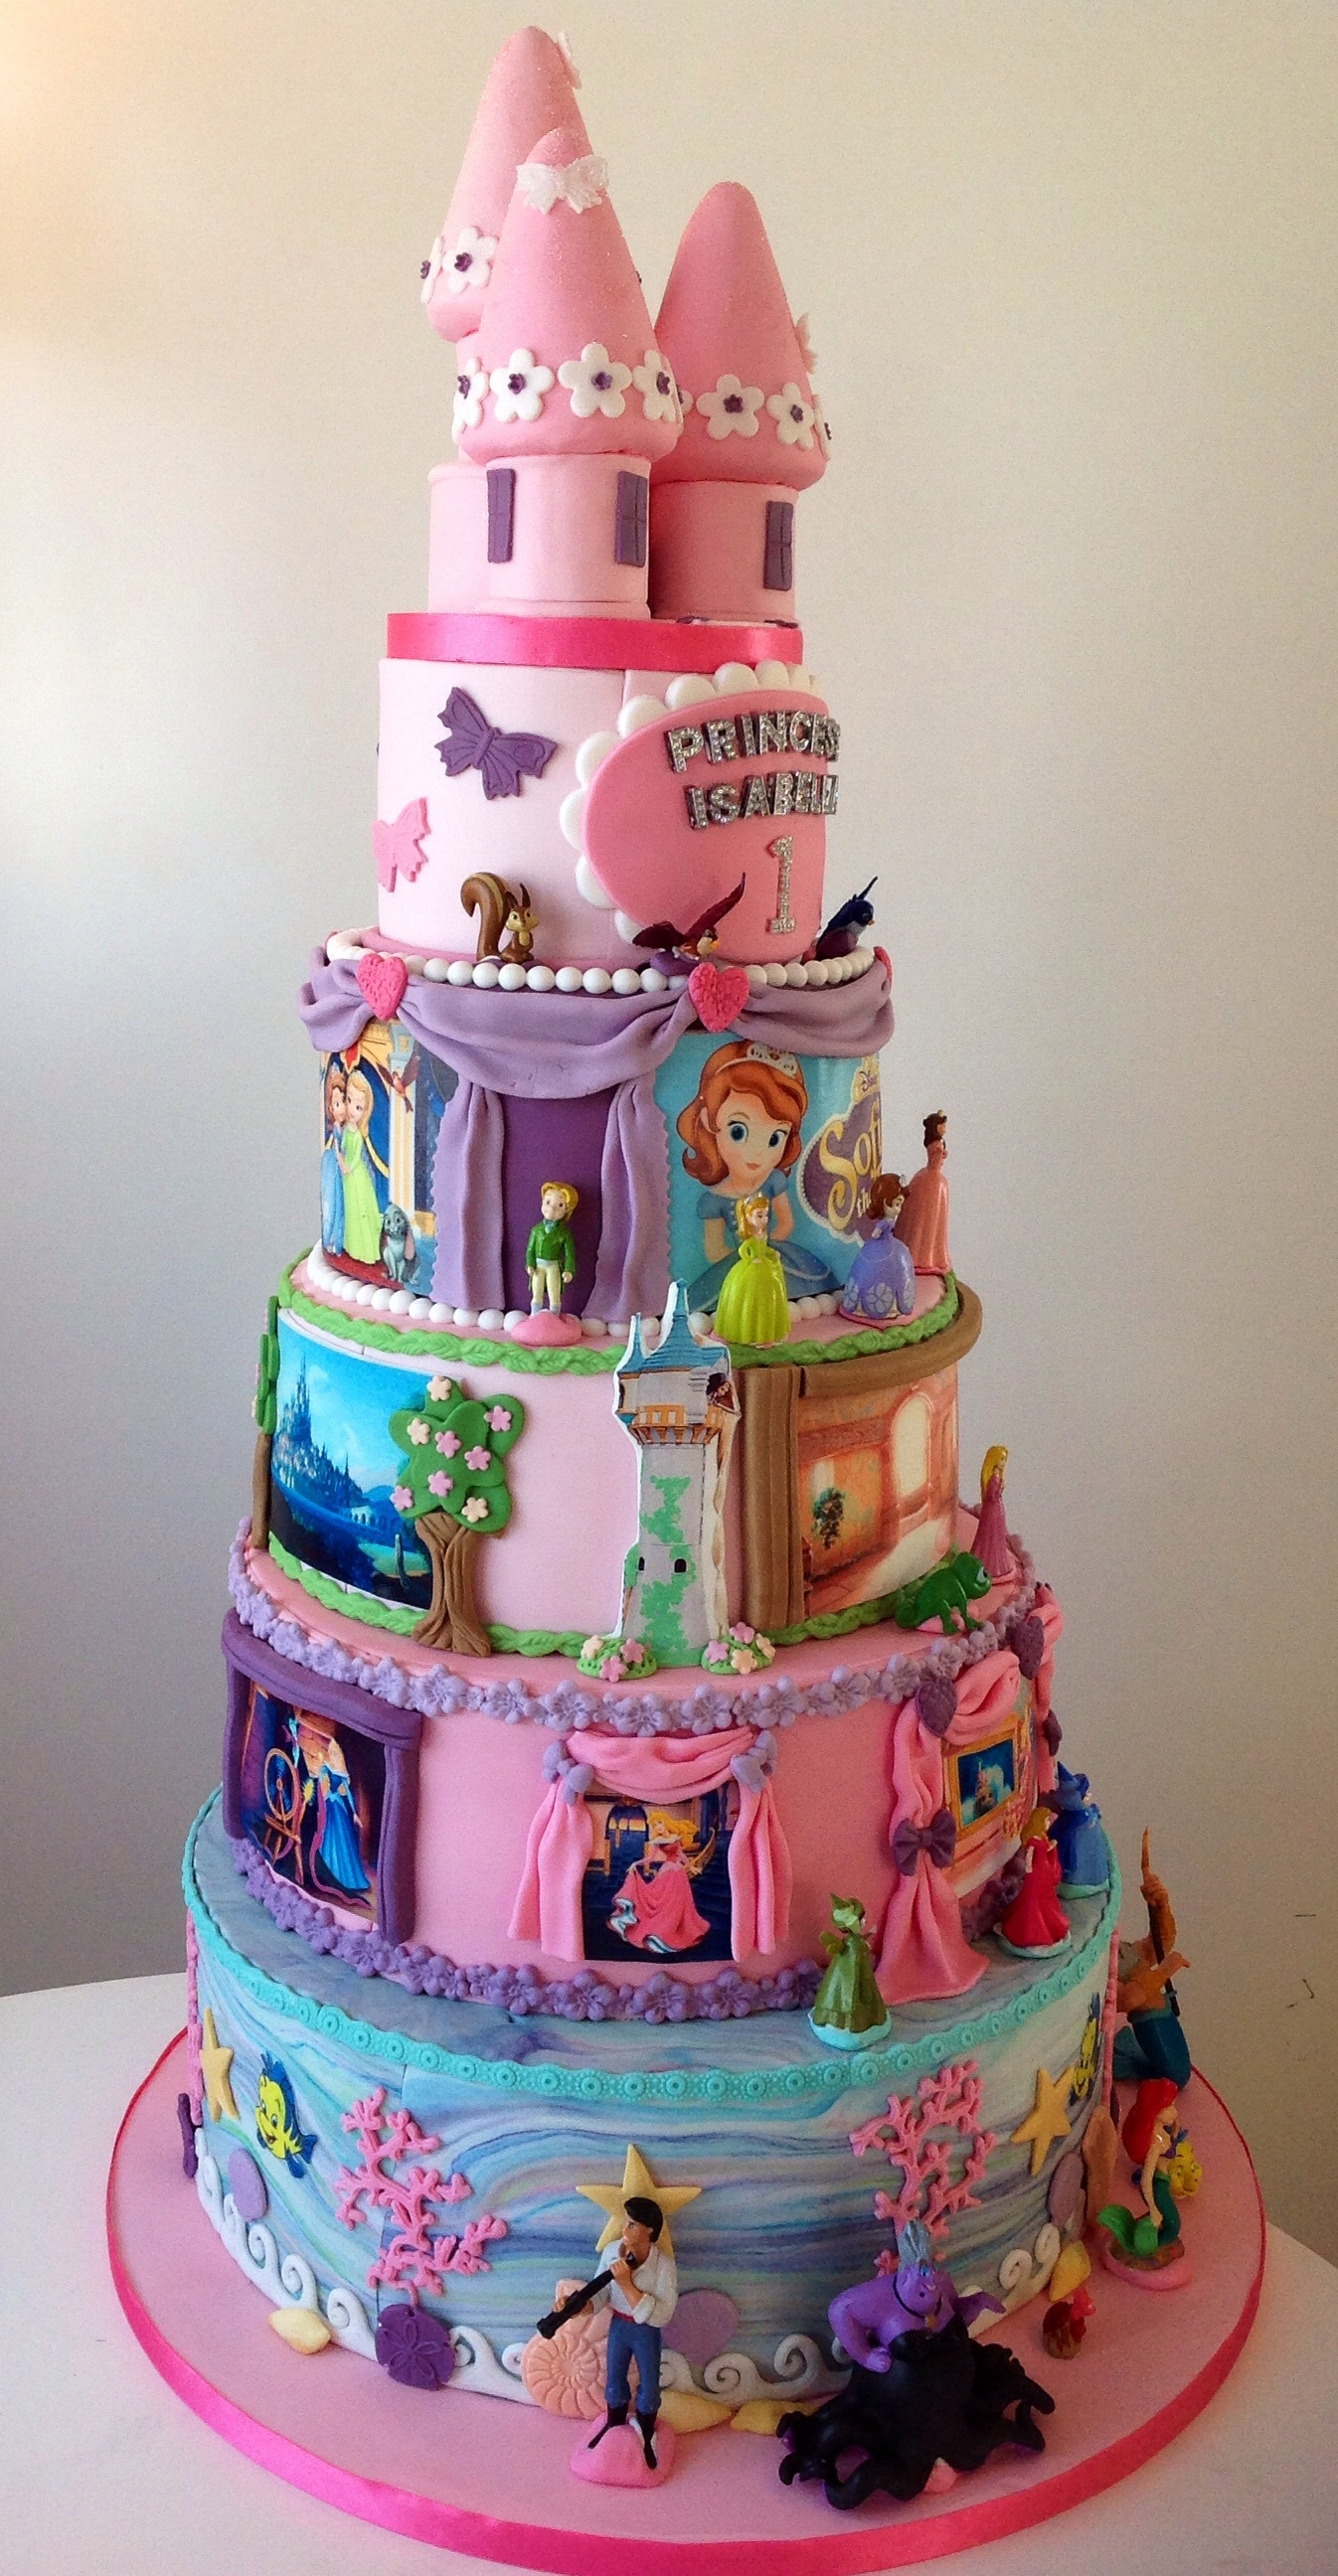 Gateau Layer Cake Disney